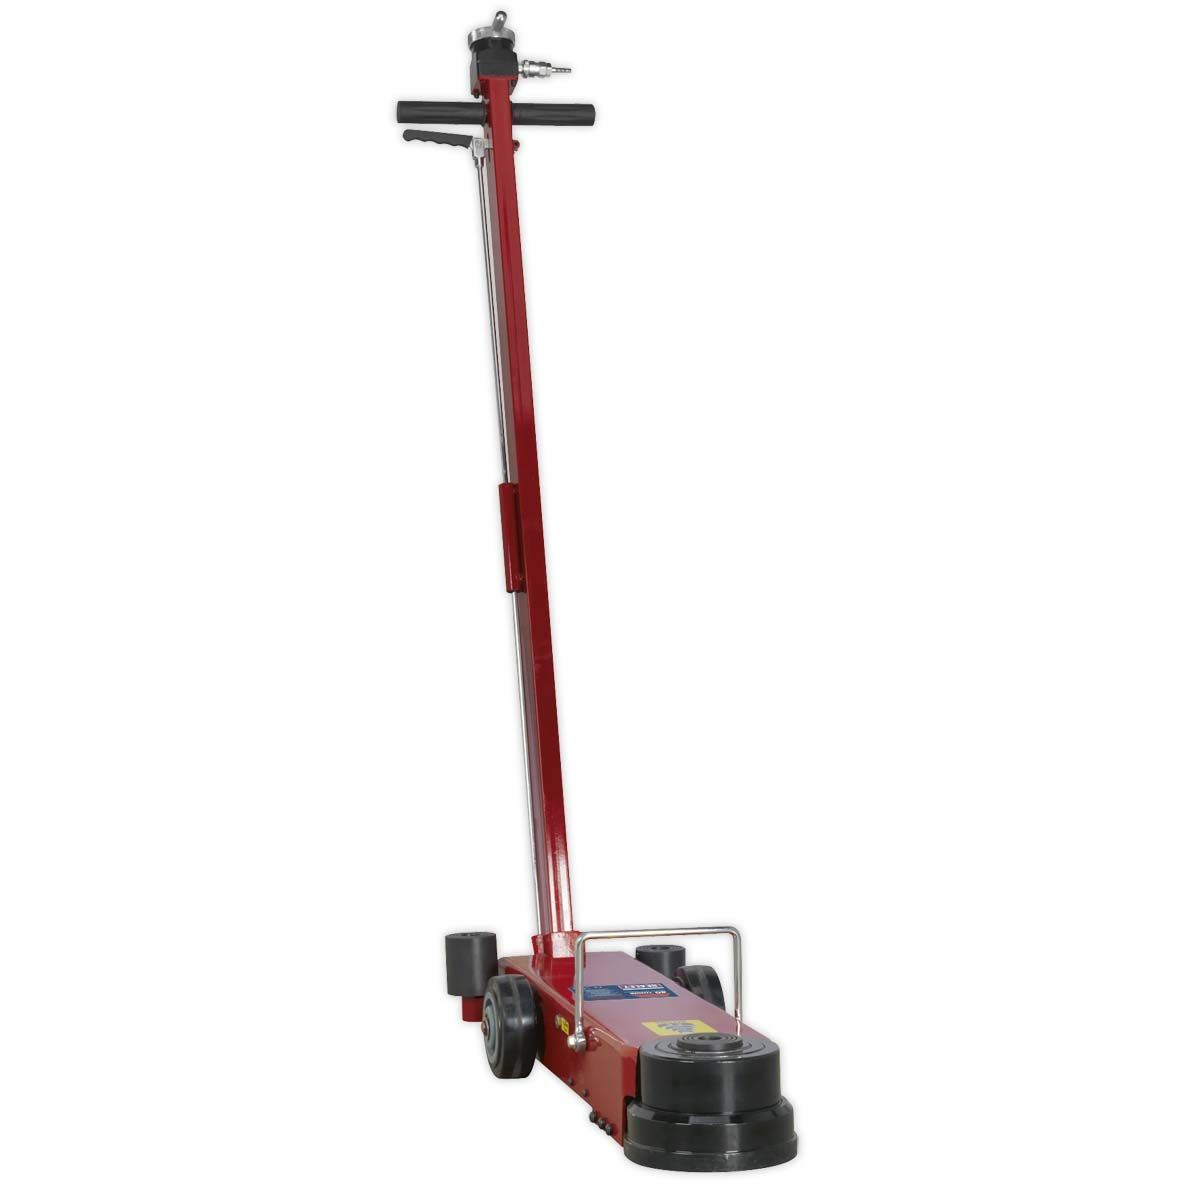 Sealey Air Operated Jack 10-40tonne Telescopic - Long Reach/Low Entry